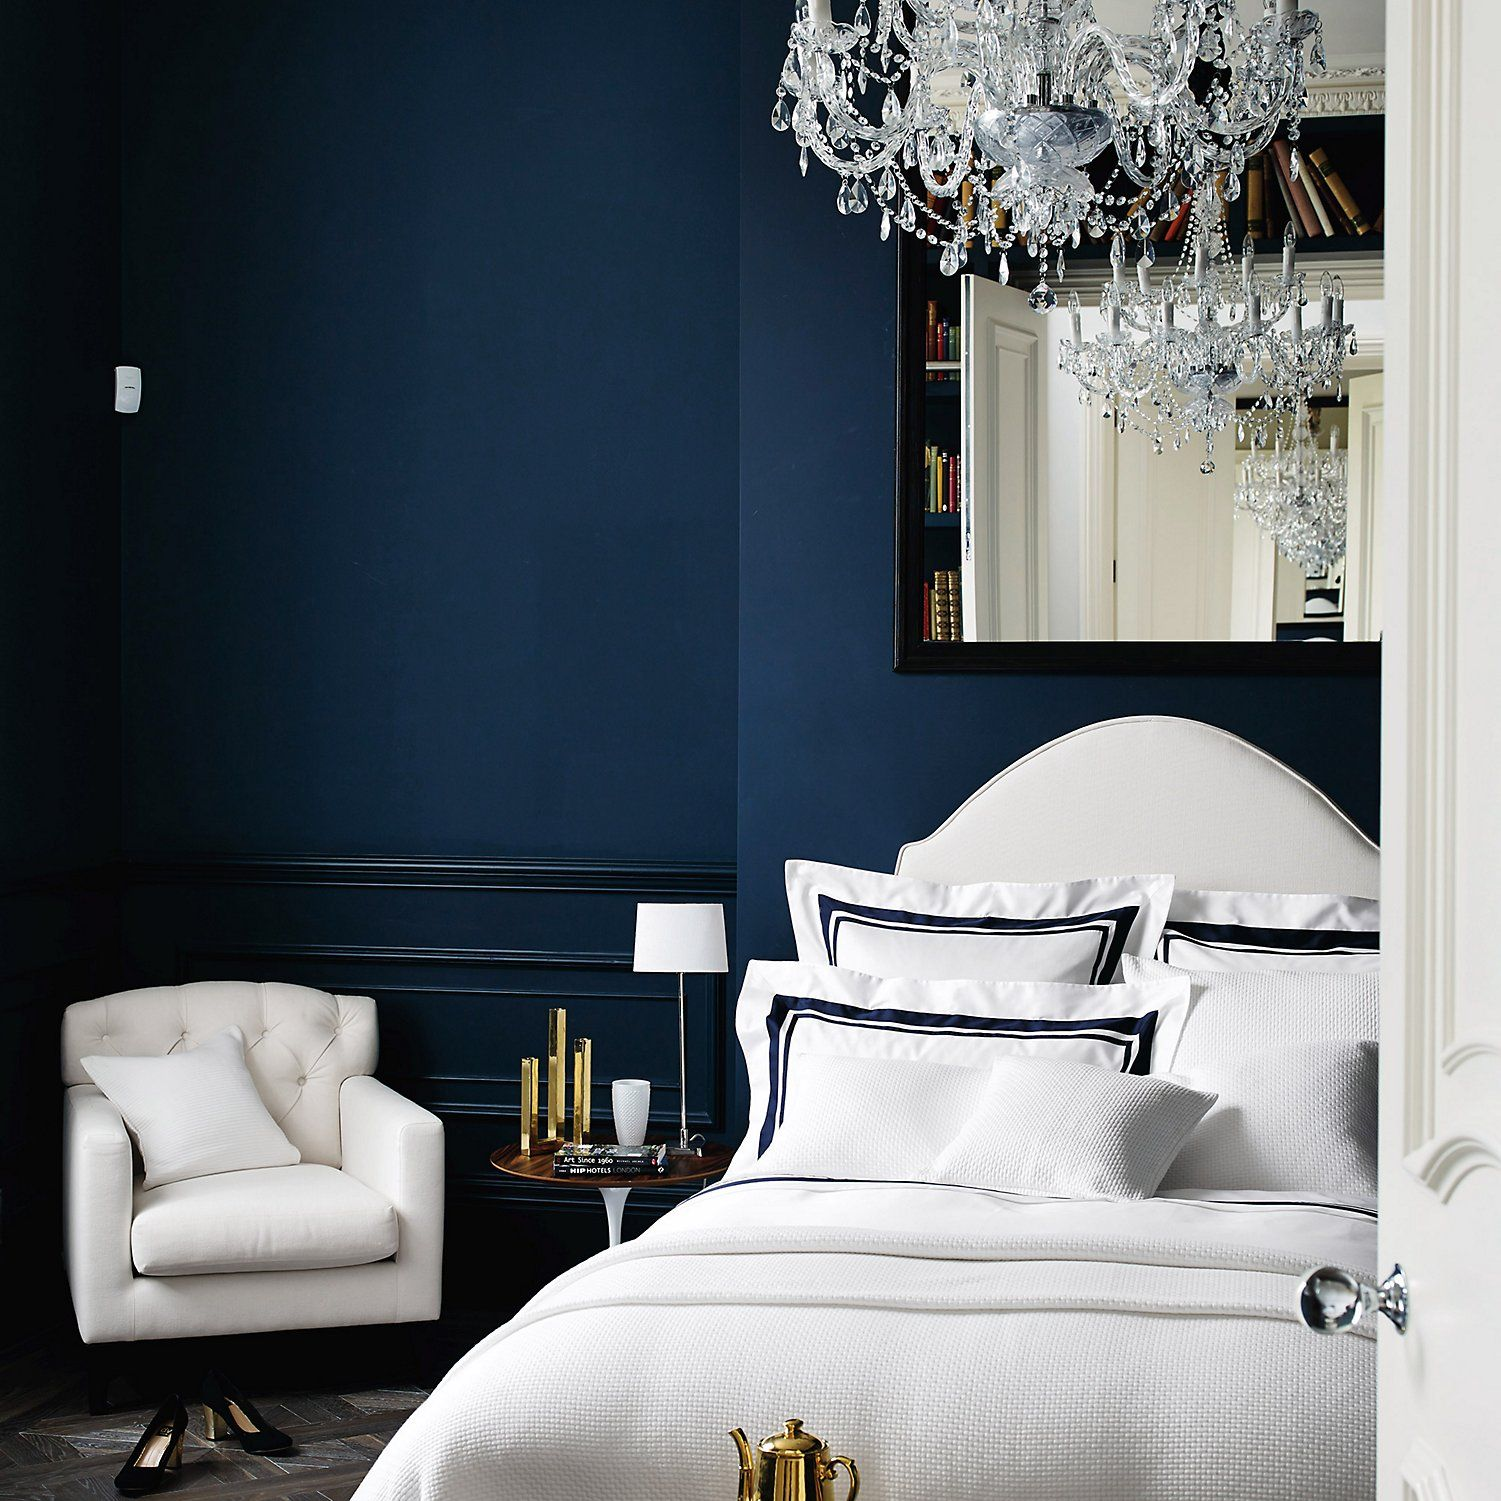 Brompton bed linen collection the white company homebedroom